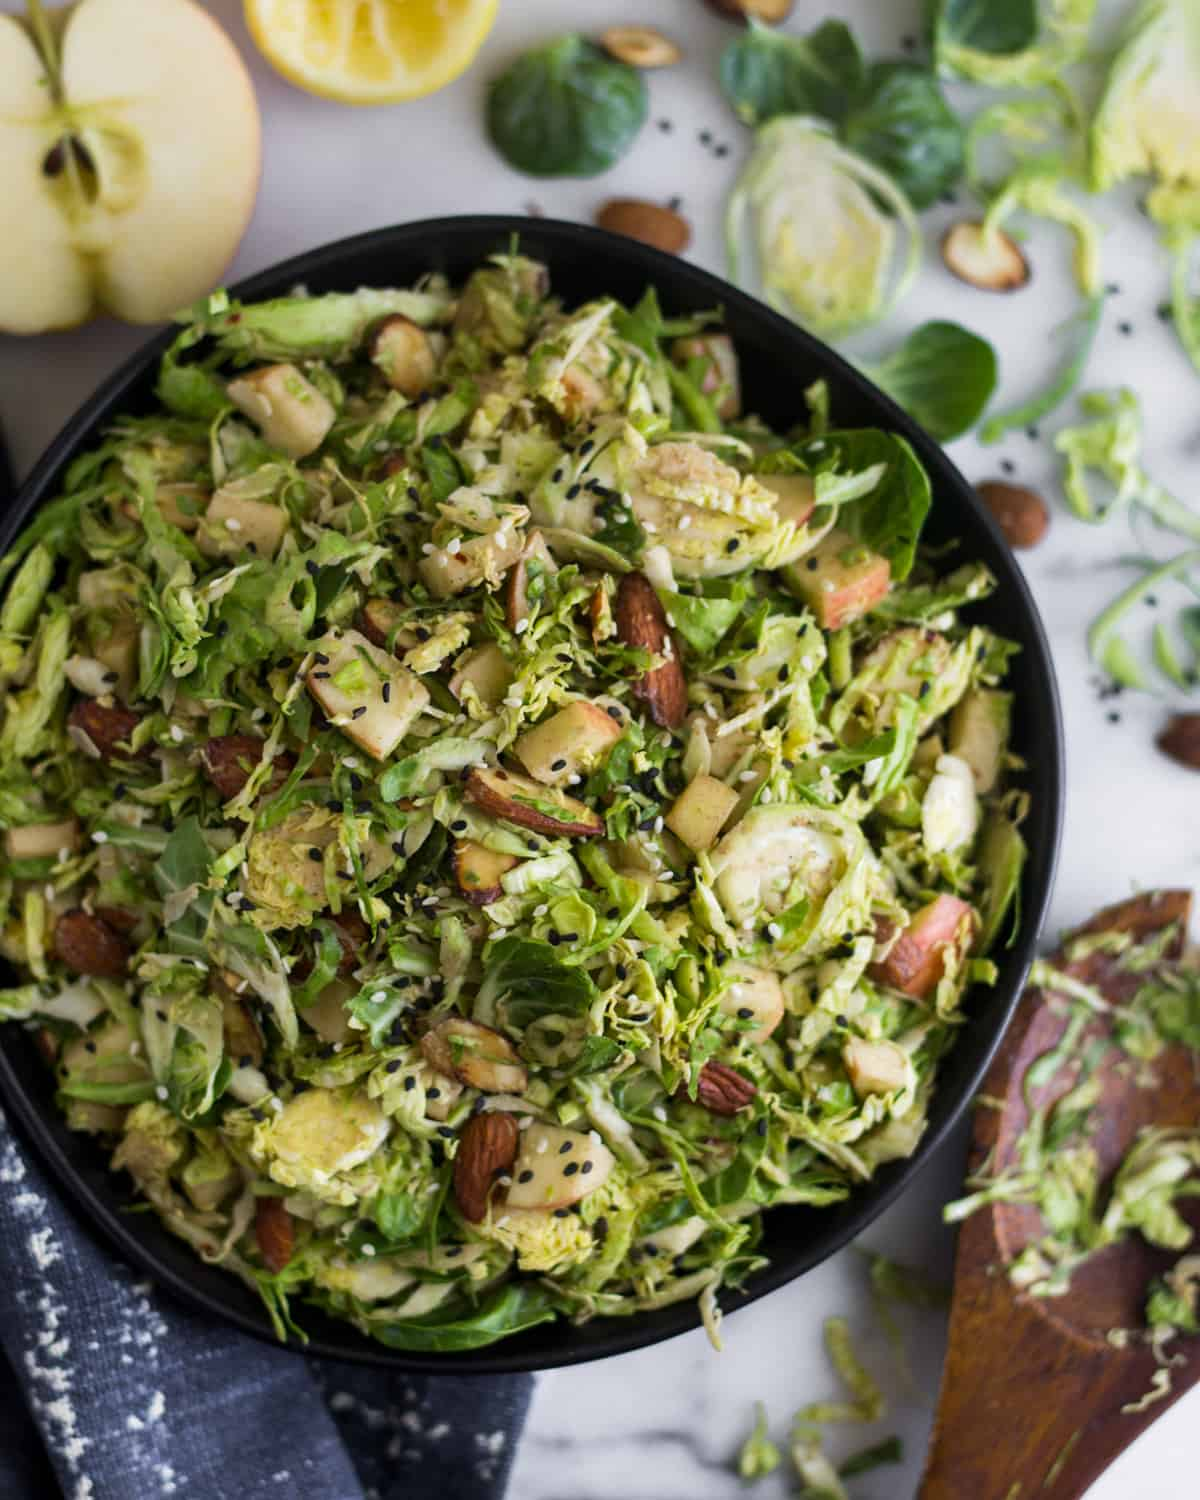 Big bowl with apple & shaved brussels sprouts salad surrounded by half an apple, half a lemon, brussels sprouts leaves, and almonds